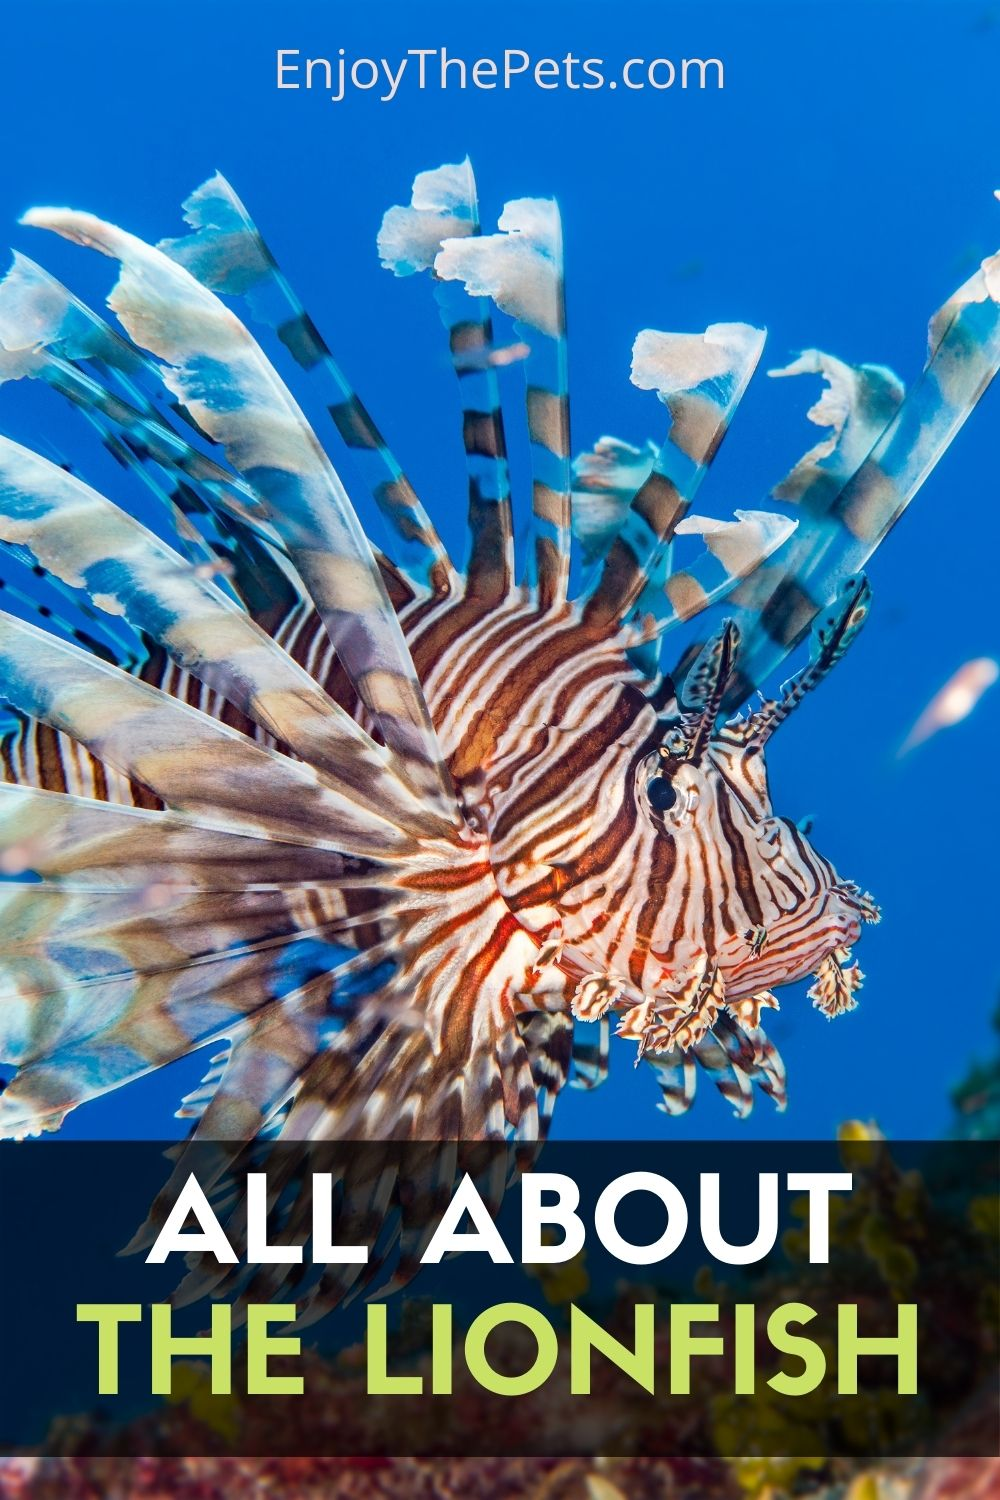 The Lionfish Species Profile Characteristics and Care Guide